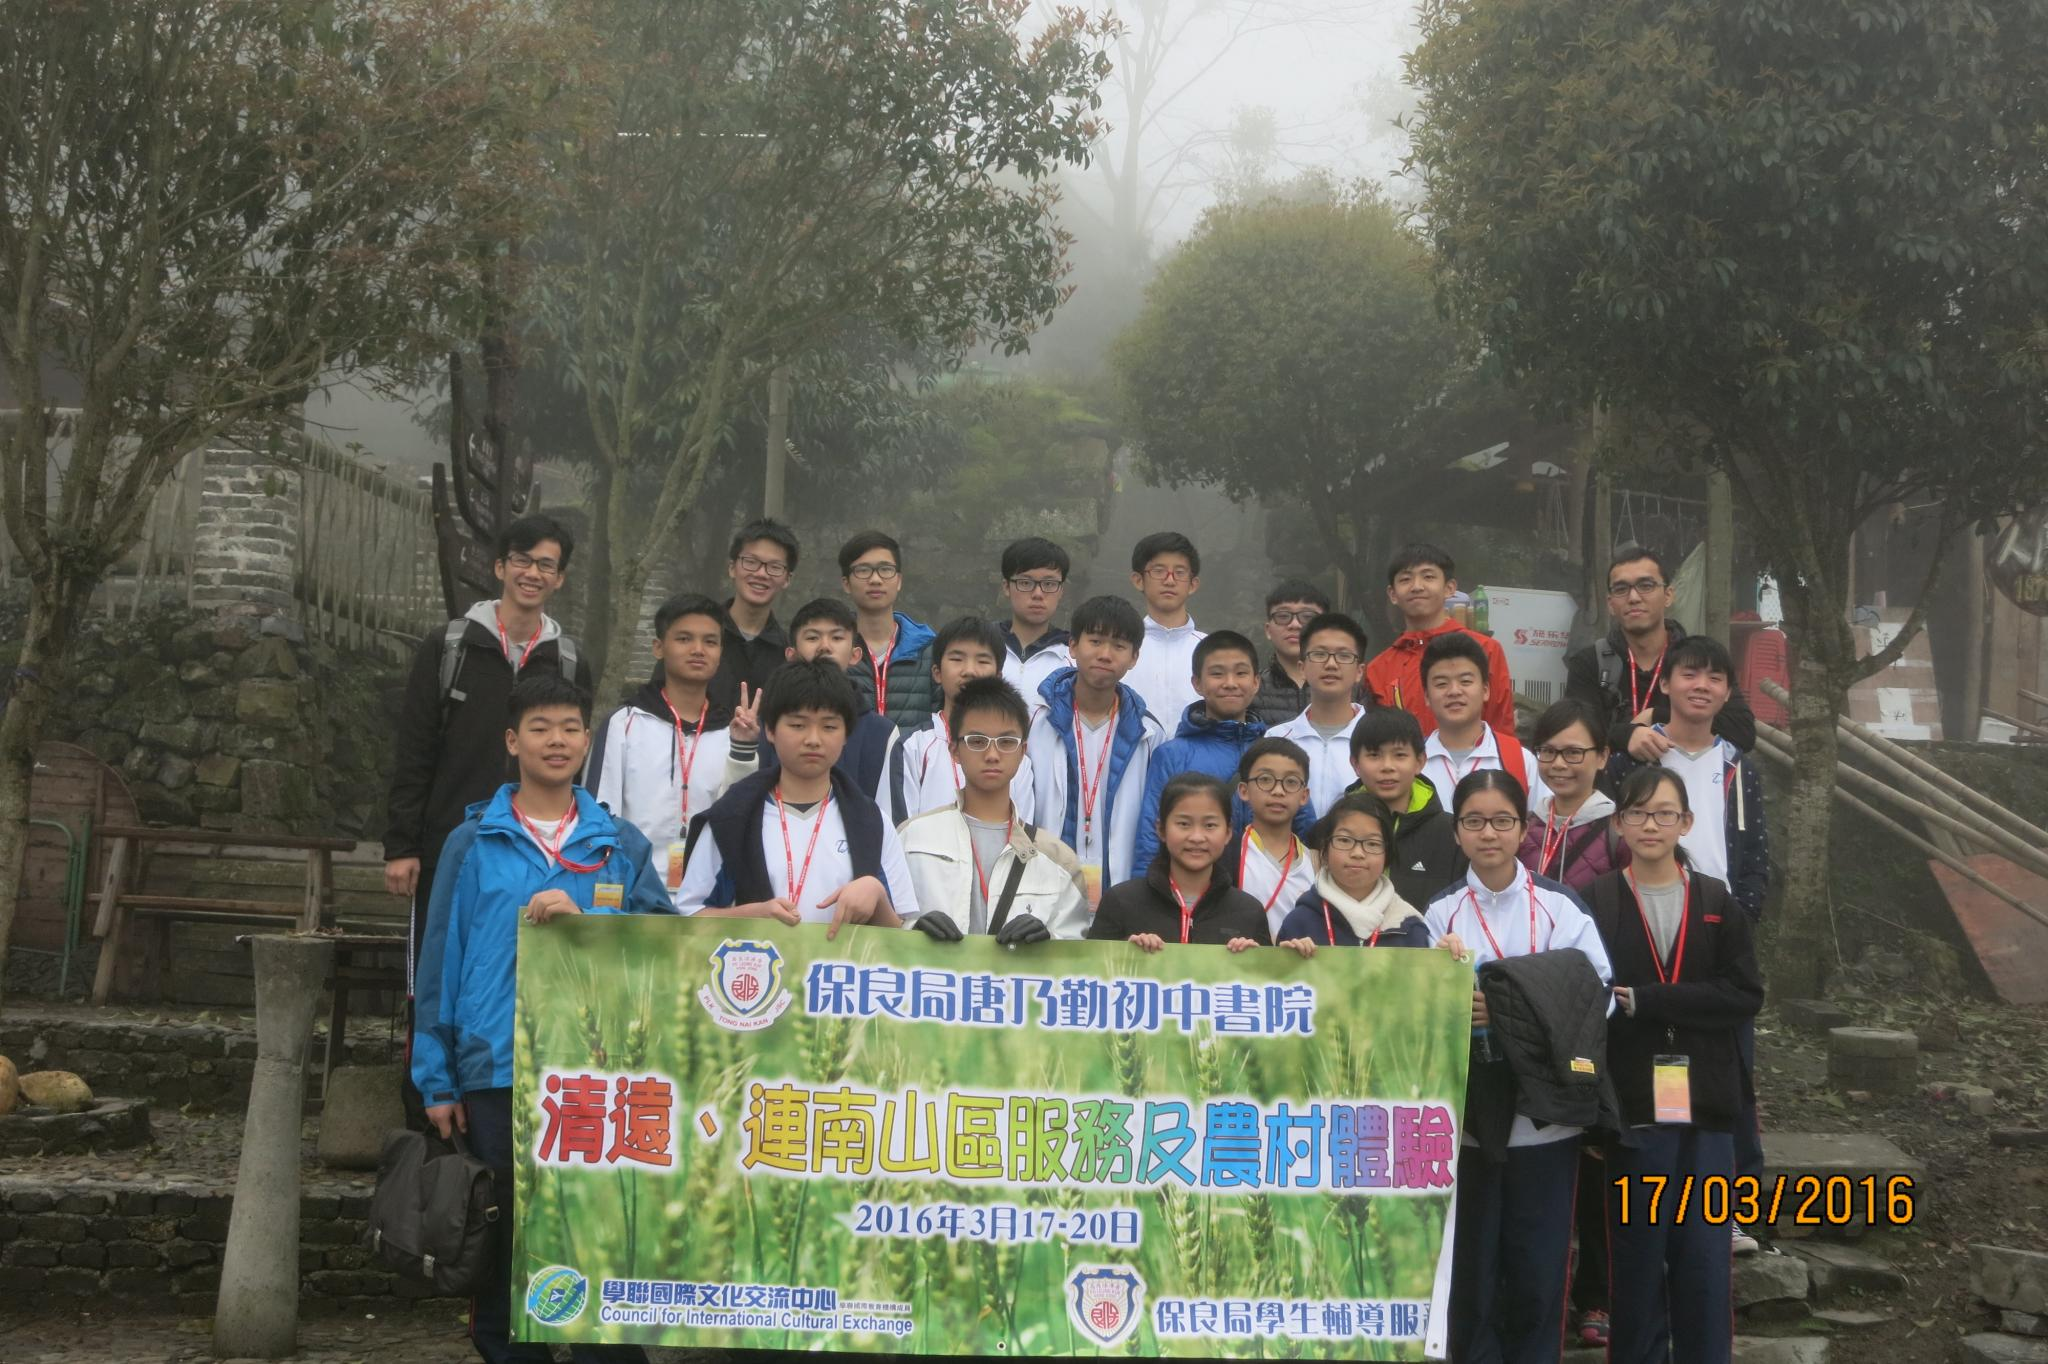 Students are visiting the LianNan NanGang Yao Village to know more about the Yao culture.